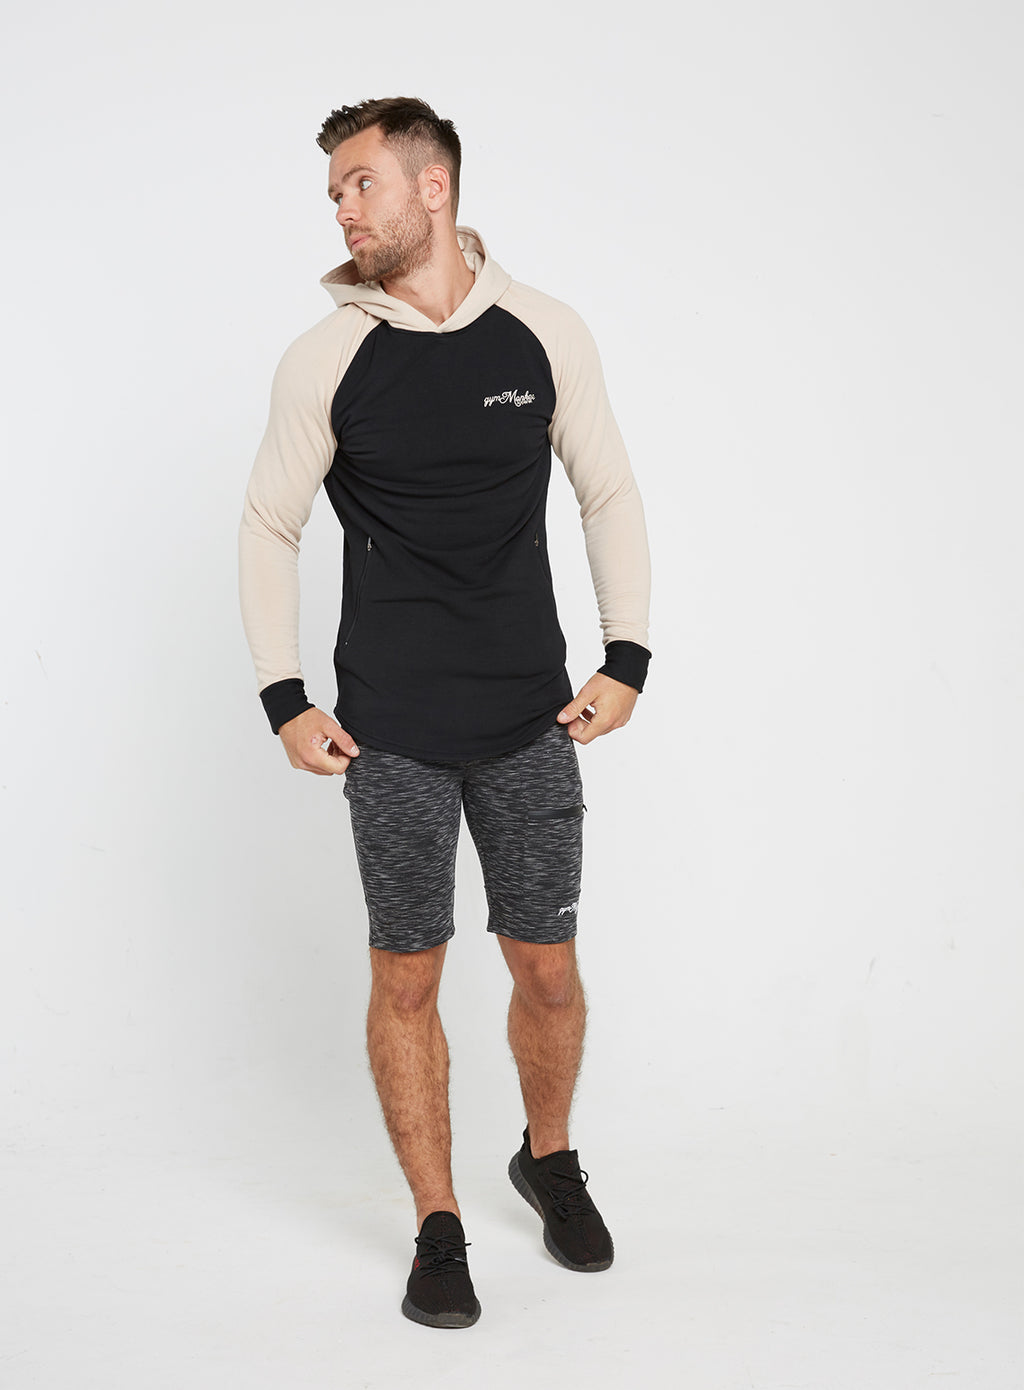 Gym Monkee - Black and Sand Hoodie FRONT FULL